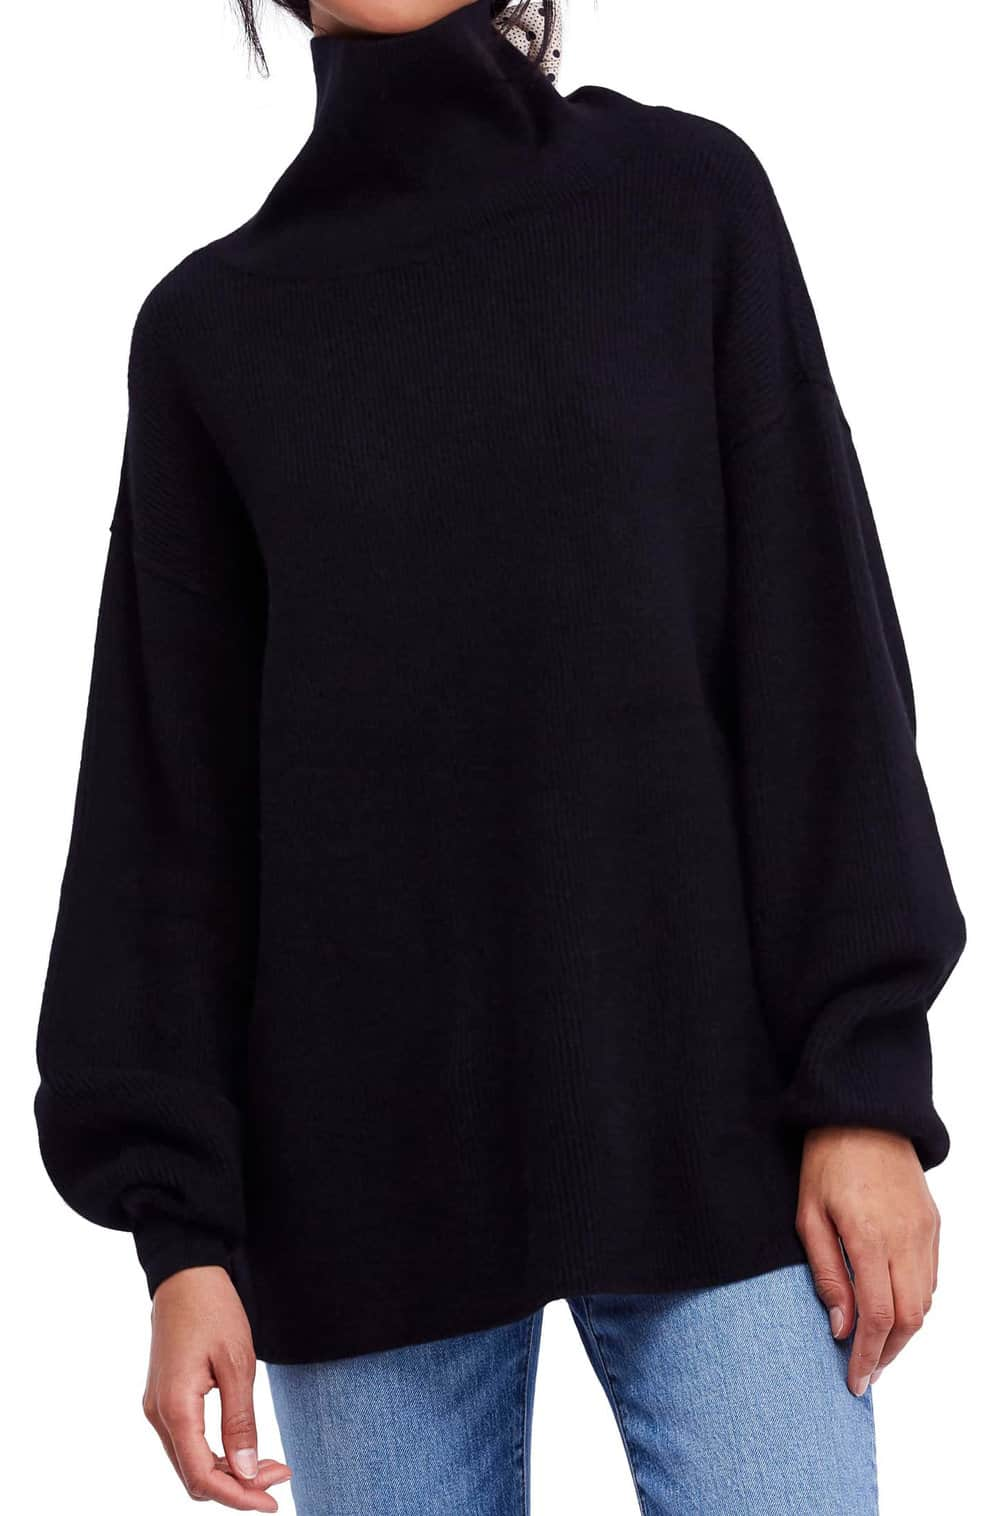 sweaters to get you ready for fall by everyday parisian